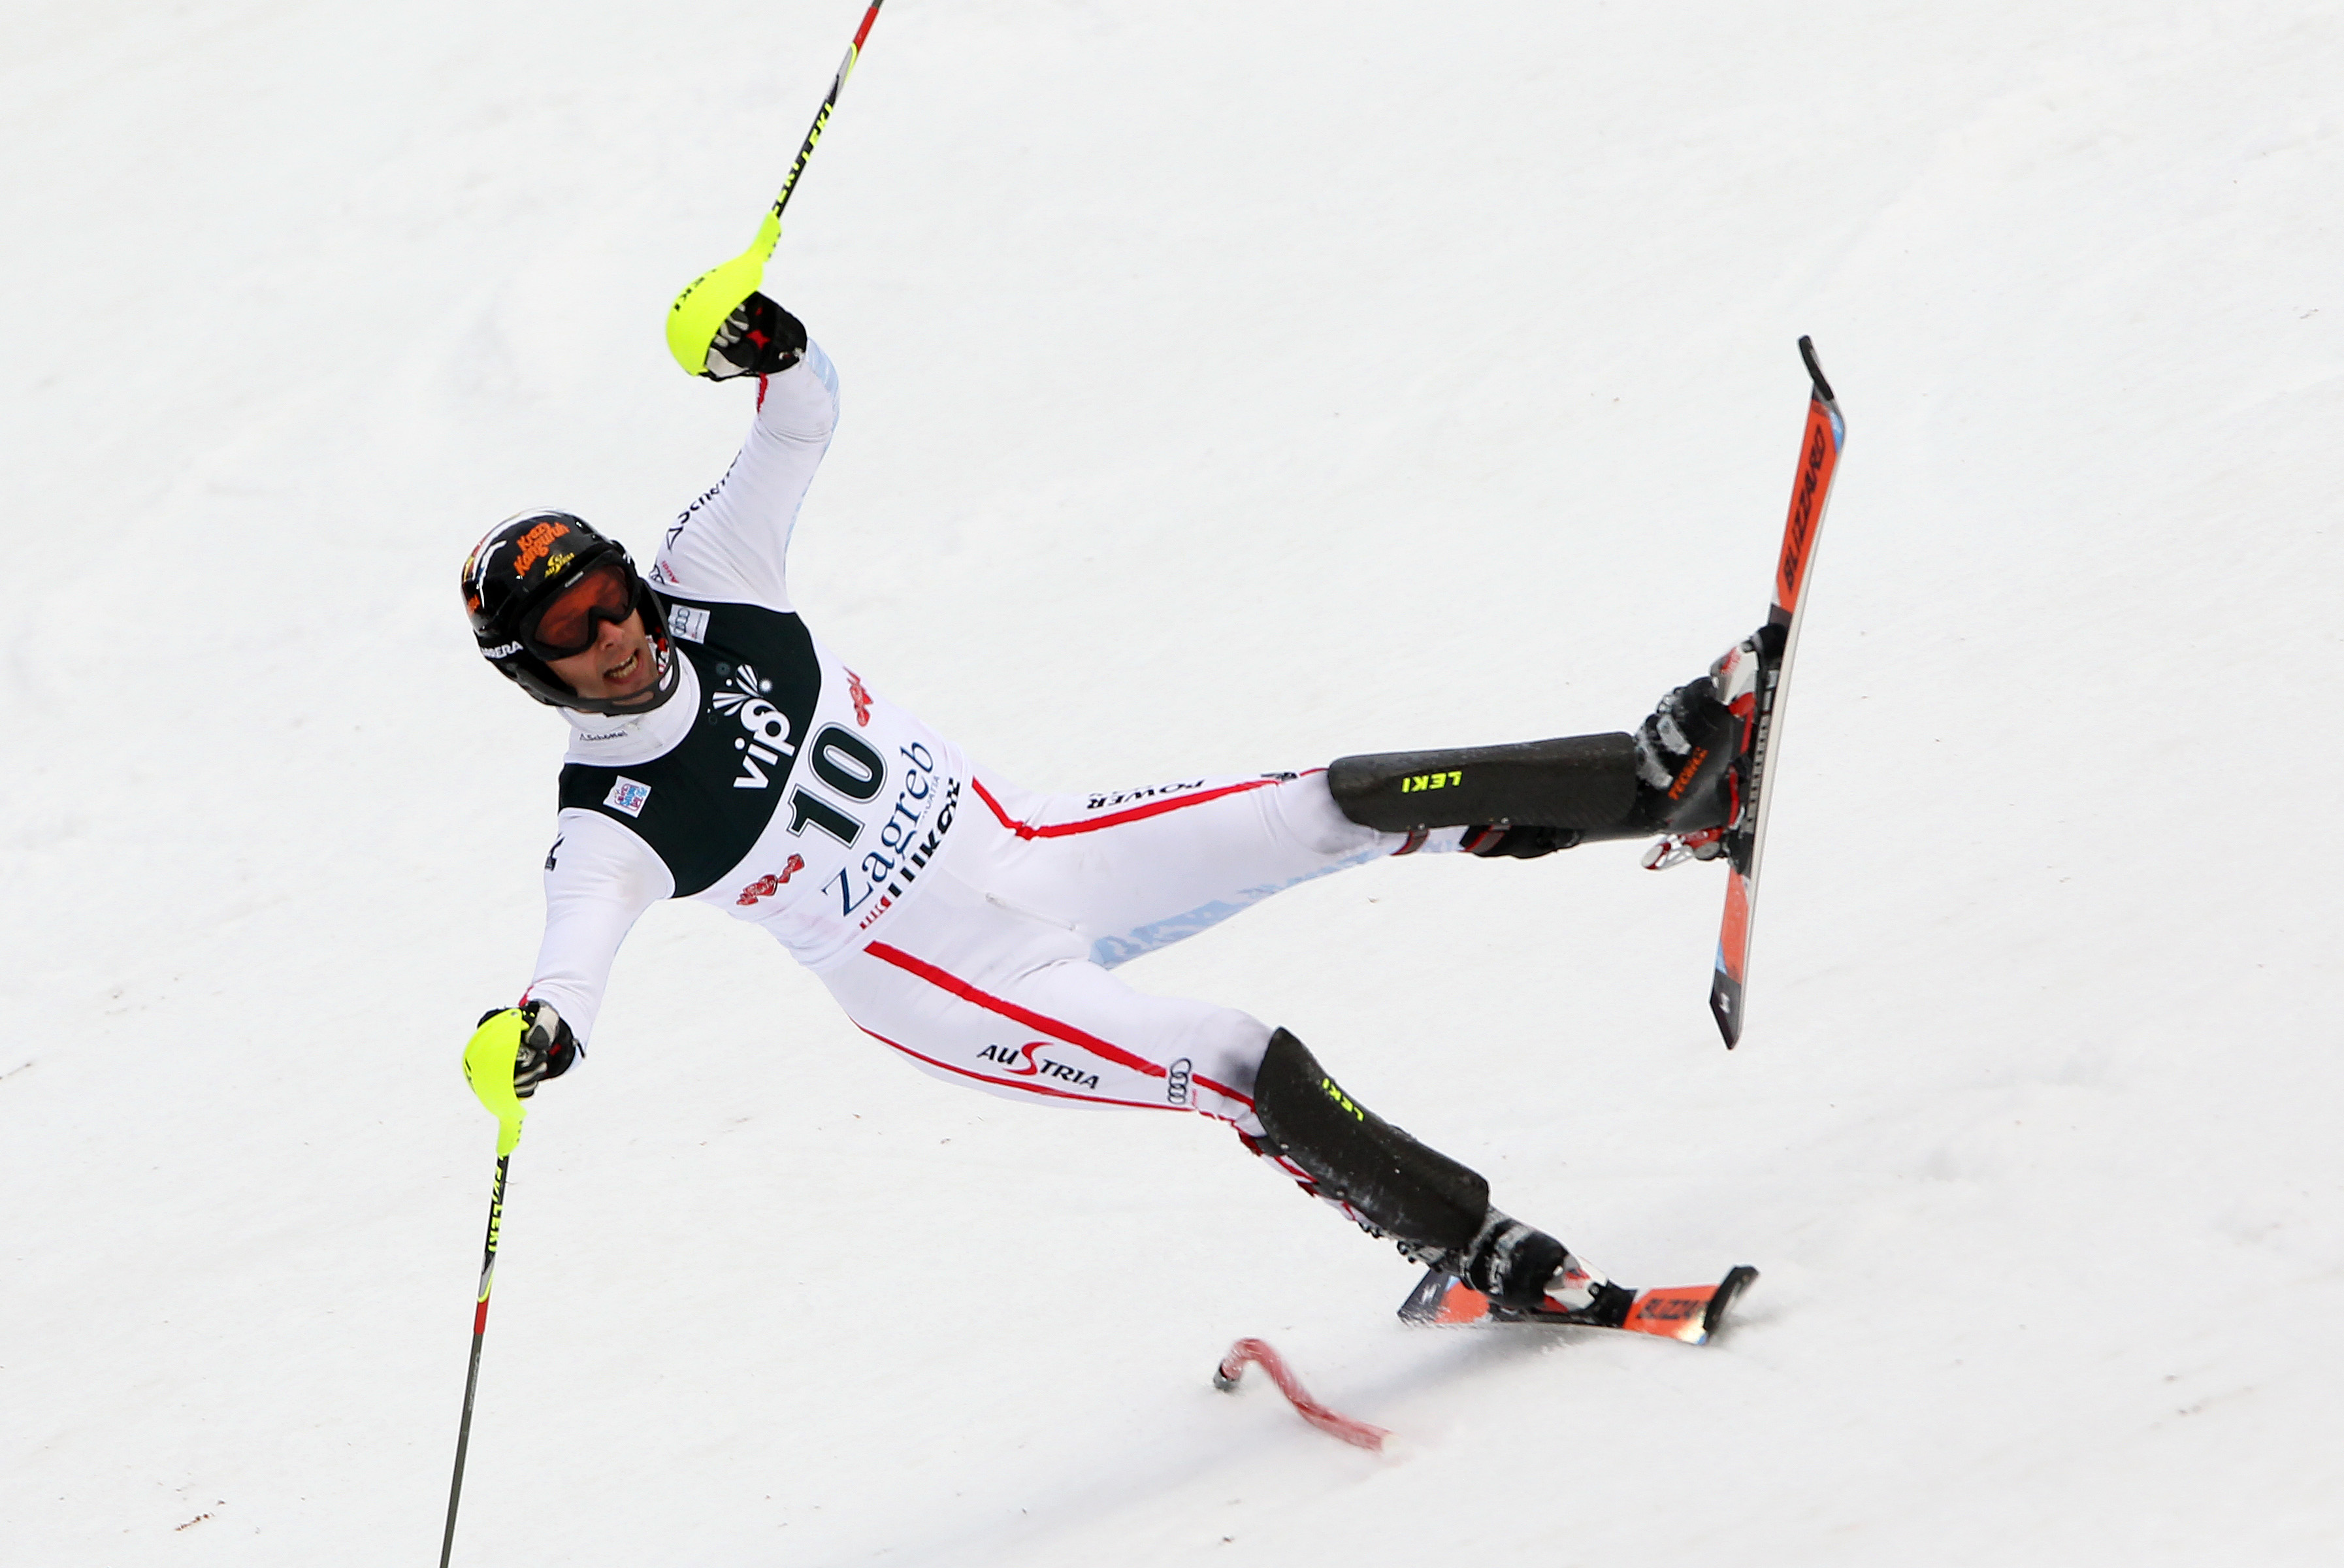 ZAGREB, CROATIA - JANUARY 6: (FRANCE OUT) Mario Matt of Austria competes during the Audi FIS Alpine Ski World Cup Men's Slalom on January 6, 2013 in Zagreb, Croatia. (Photo by Alexis Boichard/Agence Zoom/Getty Images)